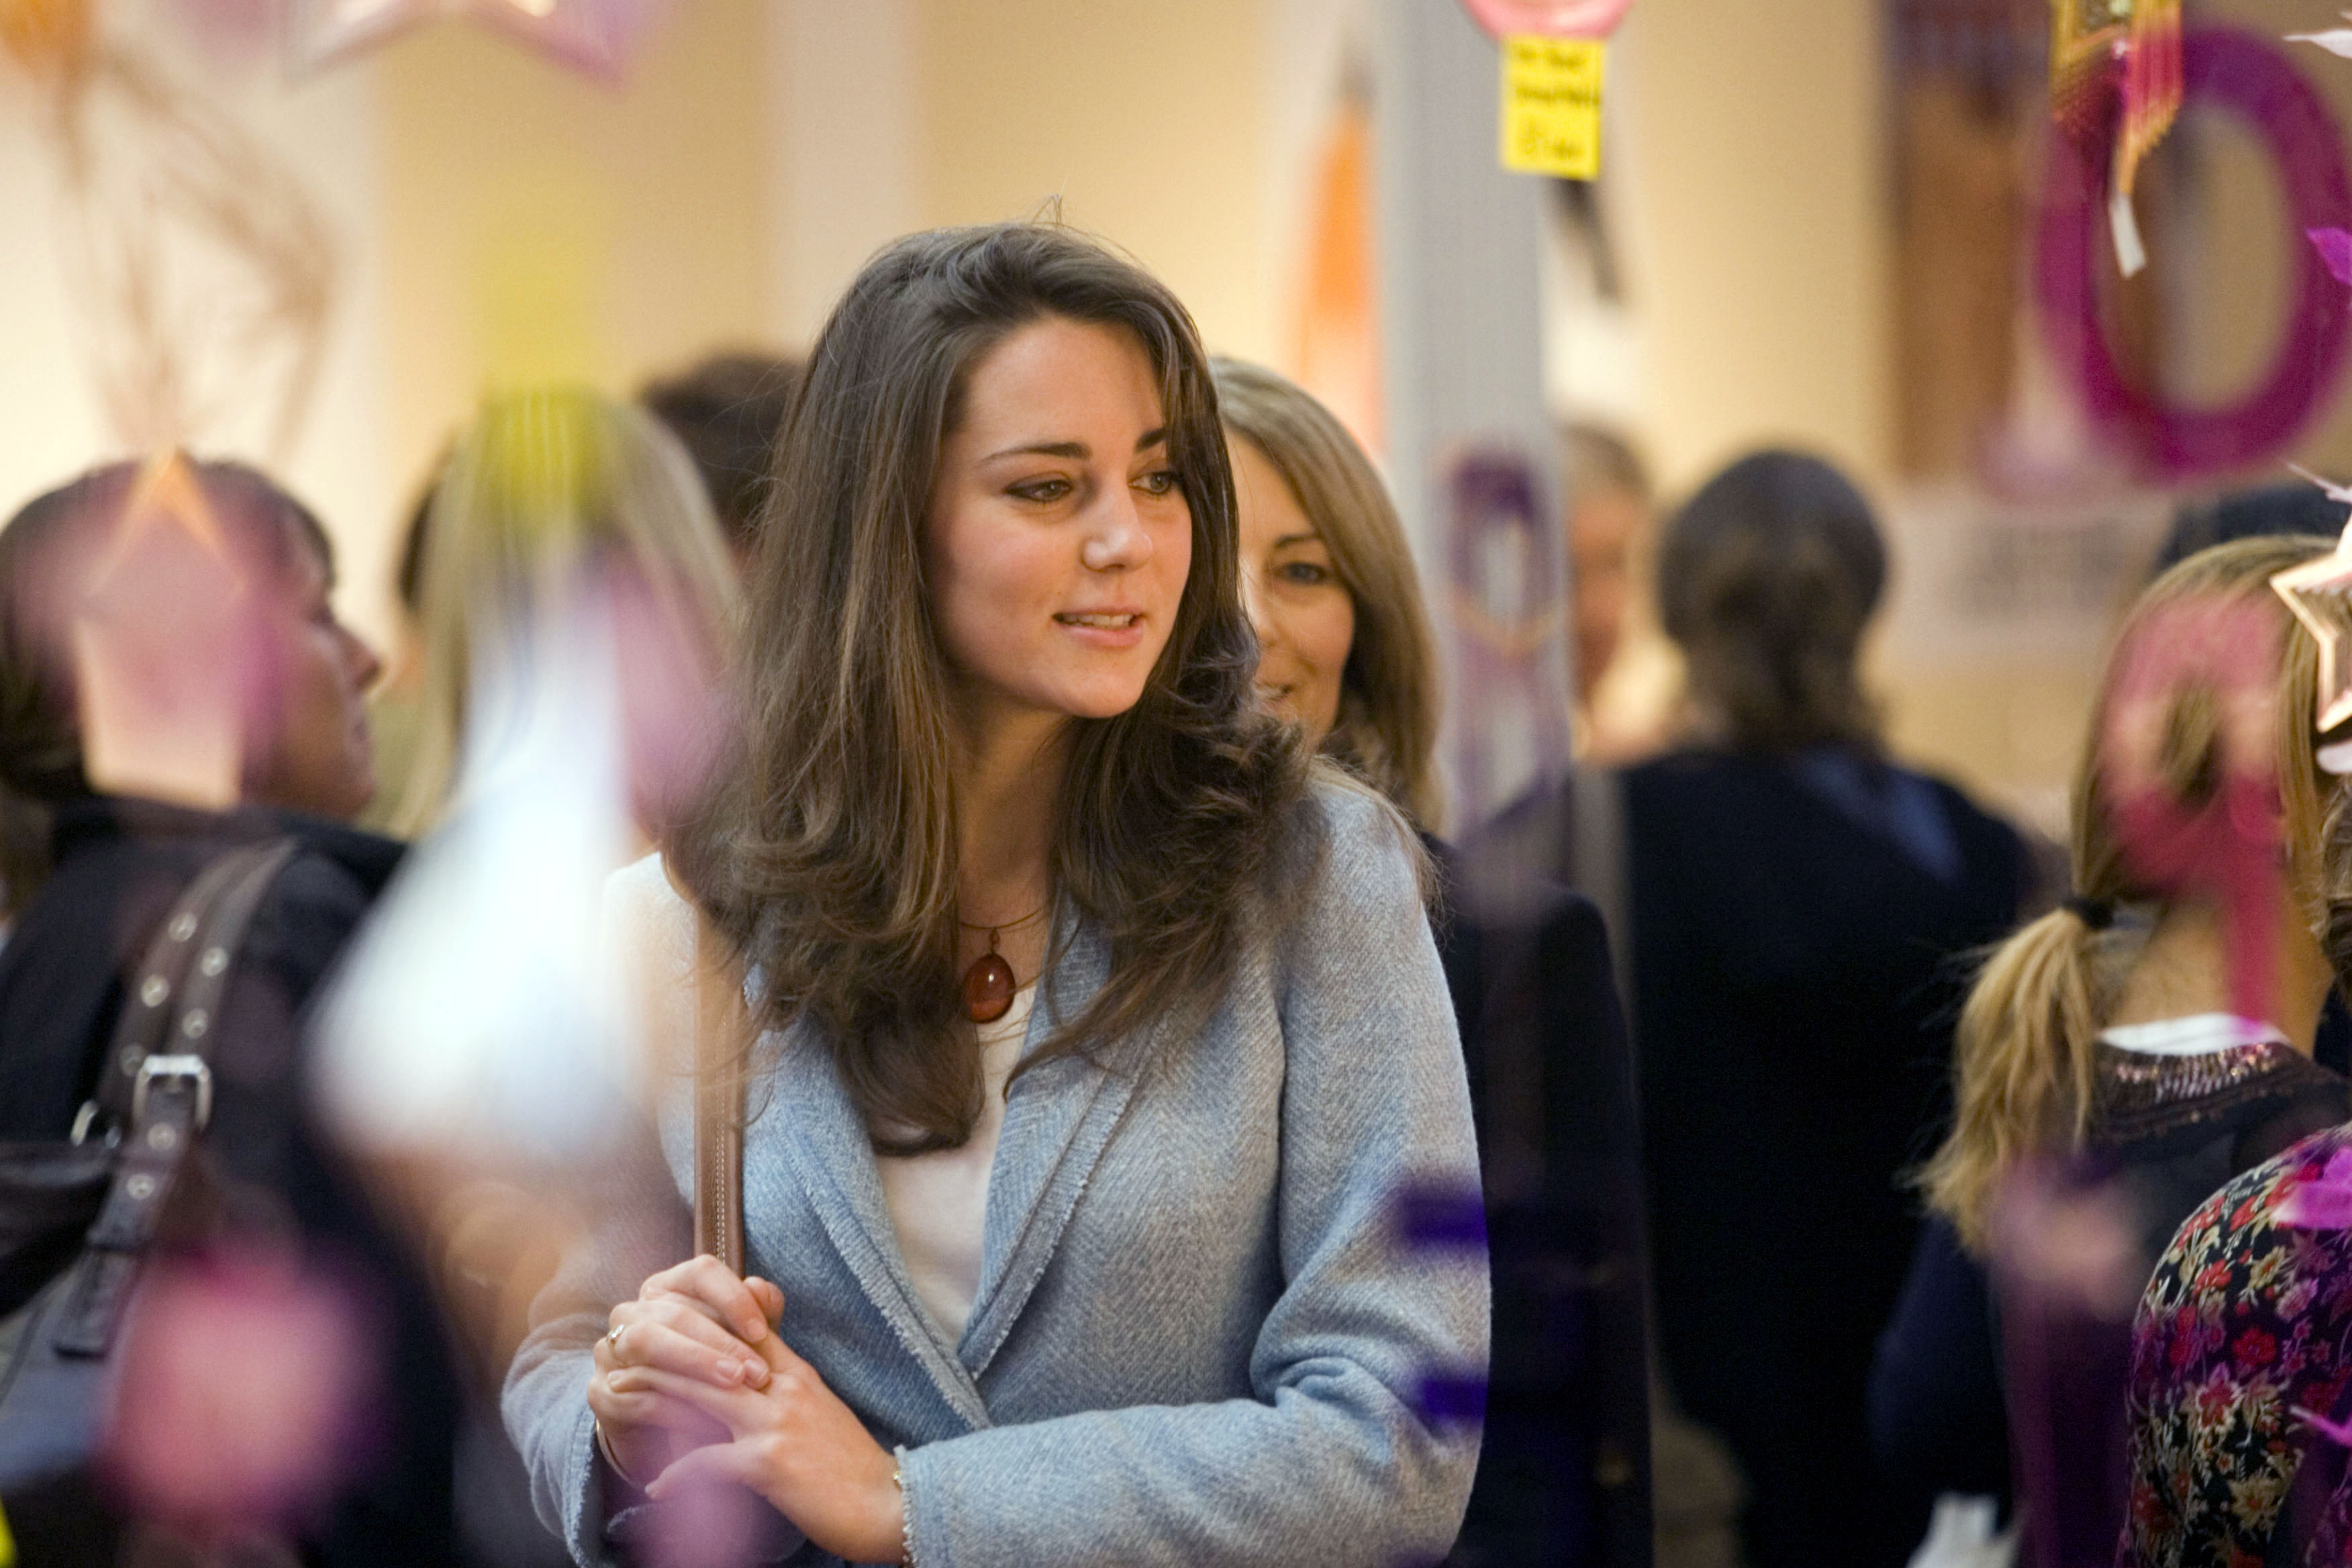 Kate Middleton & Mother Carole Visit The Spirit Of Christmas Shopping Festival At London'S Olympia. (Photo by Antony Jones/Brendan Bierne/UK Press via Getty Images)